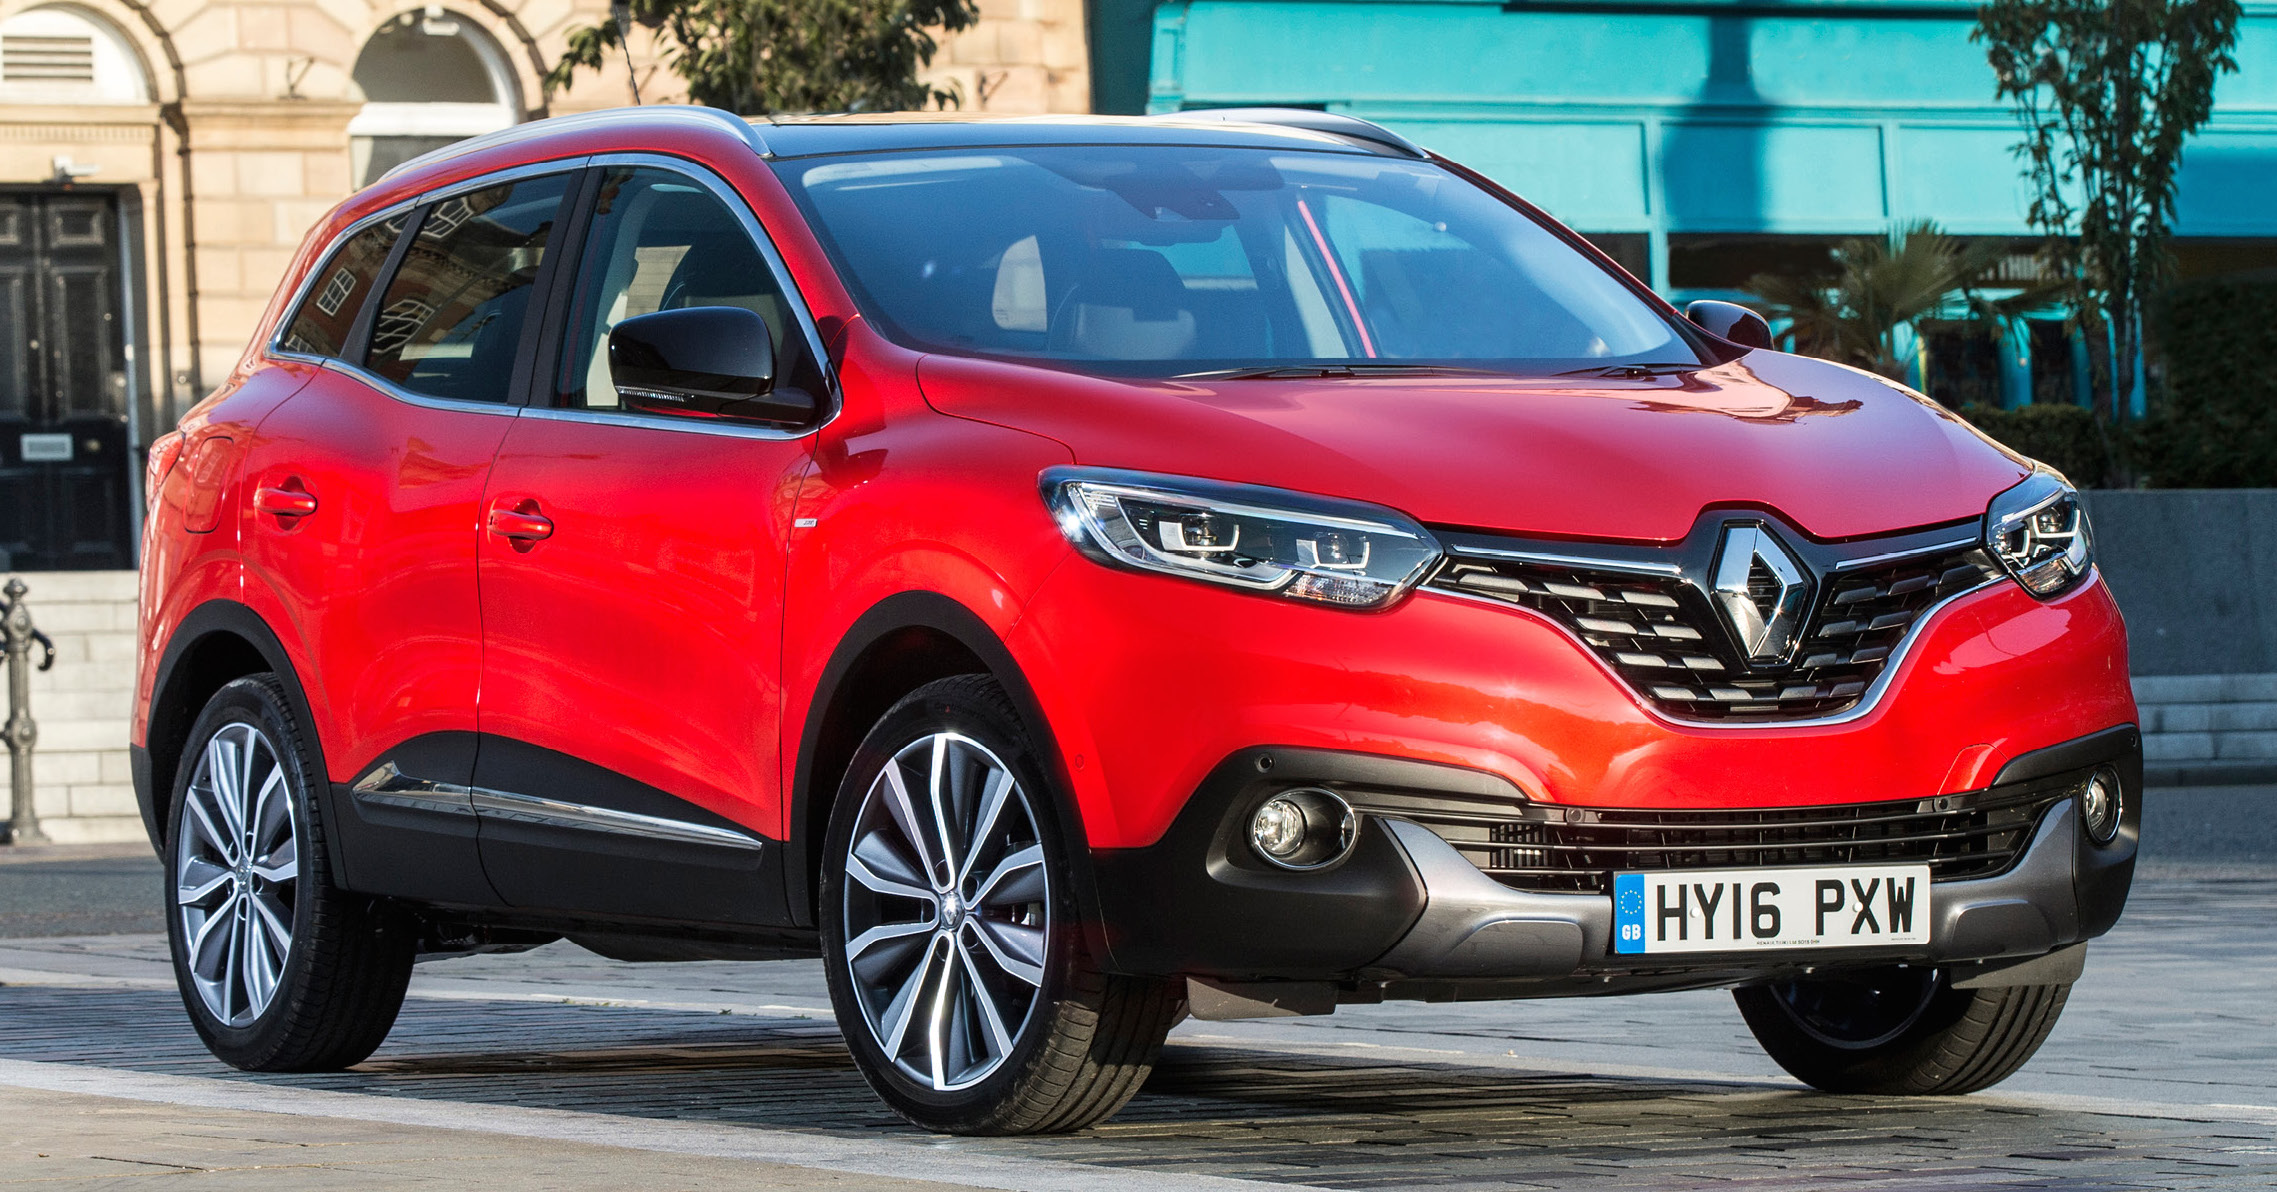 renault kadjar gets new 1 2 turbo mill 7 speed edc. Black Bedroom Furniture Sets. Home Design Ideas